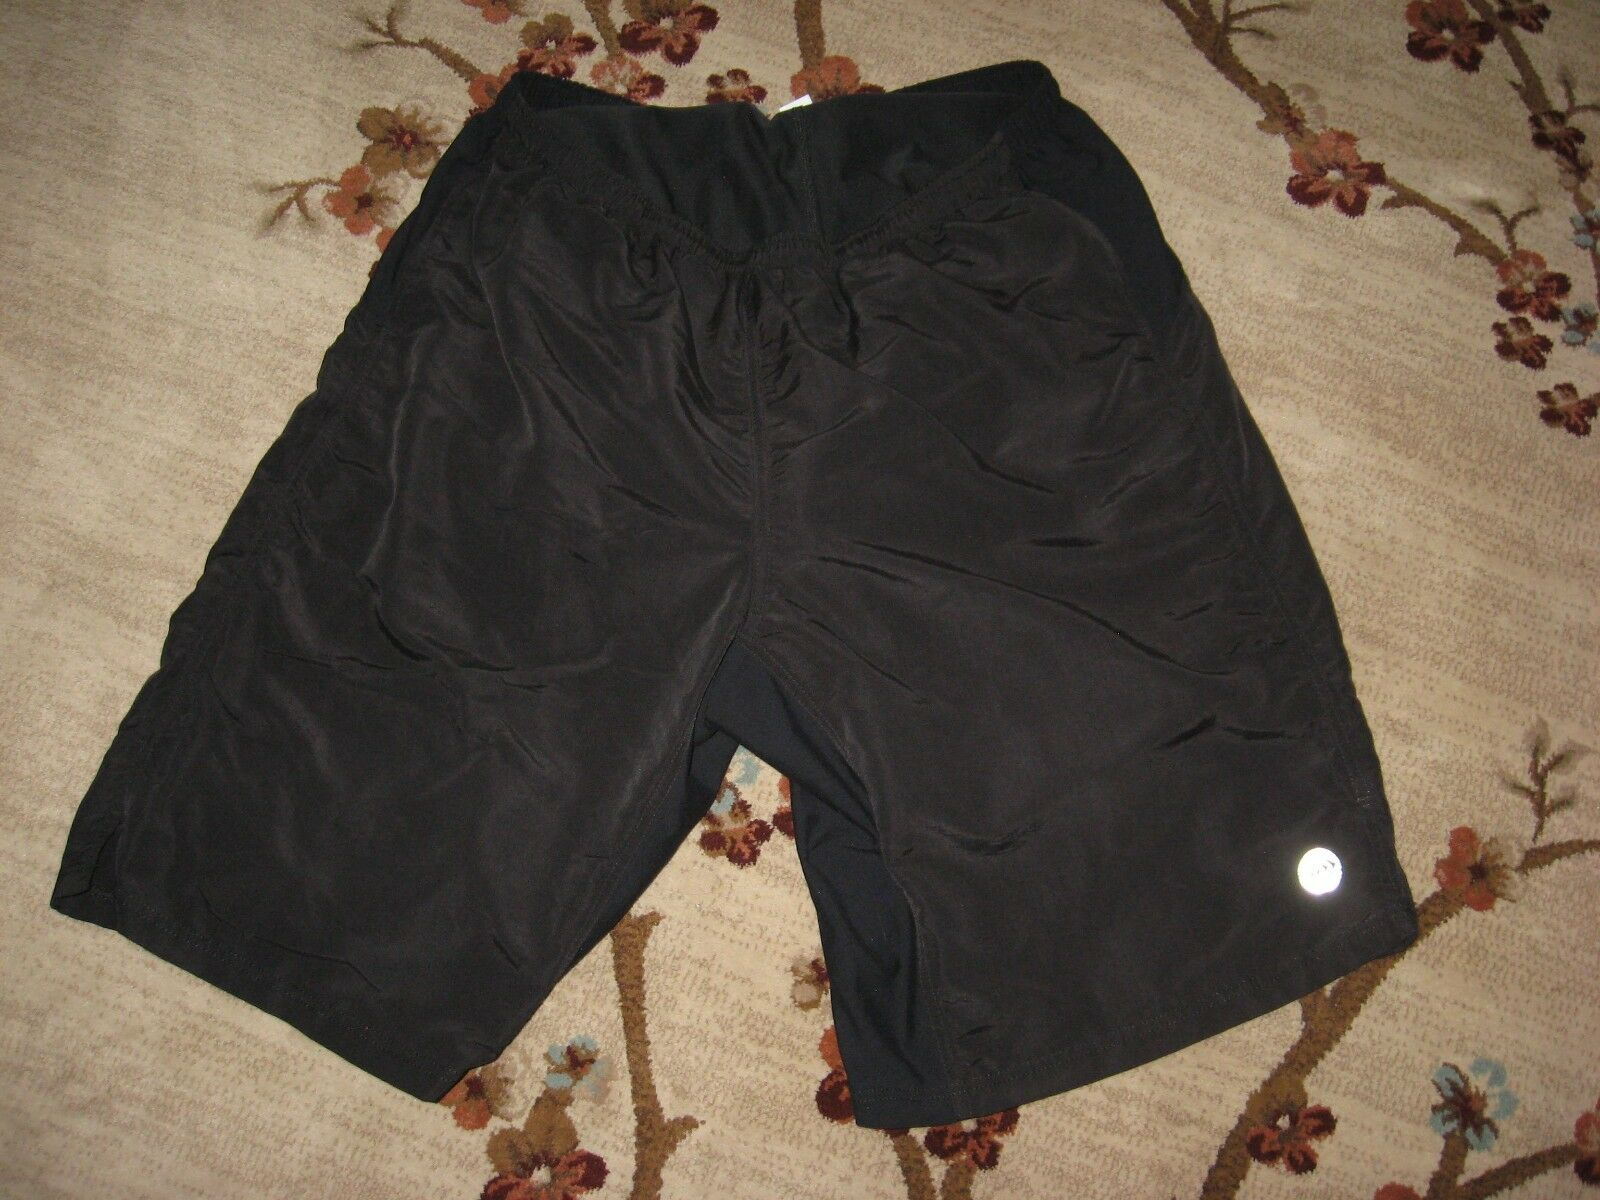 AEredECH DESIGNS CYCLEWEAR MEN'S PADDED DOUBLE SHORTS SIZE 3XL